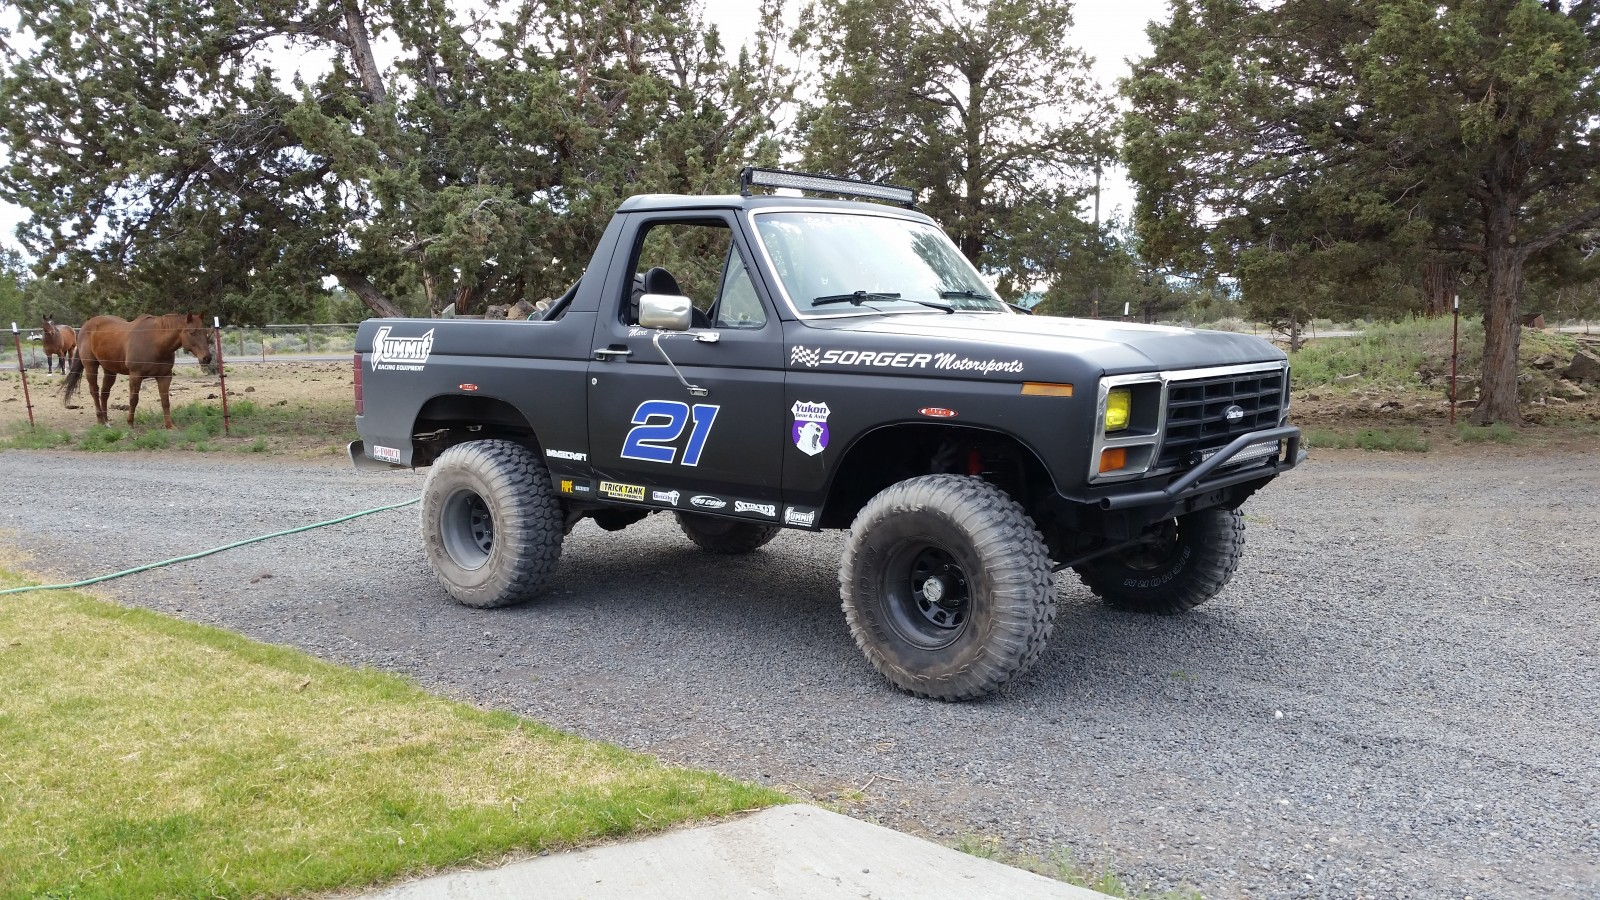 Desert Bronco (Part 2): Marc Sorger Finishes His Off-Road